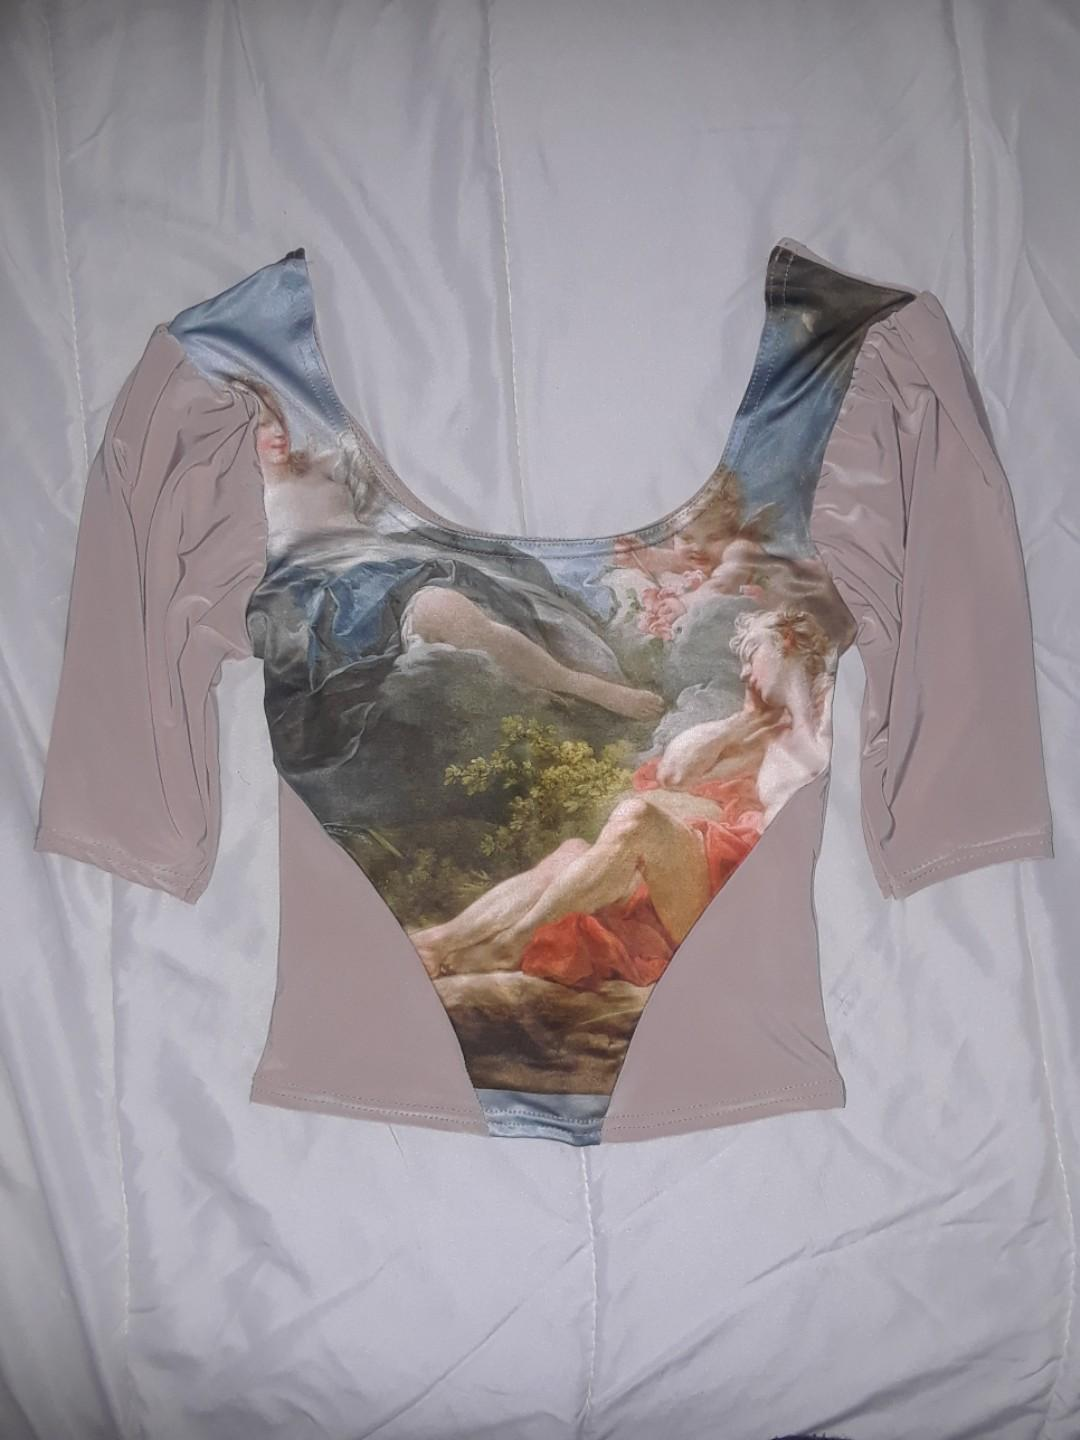 NEW holy print nude mesh bodice top shirt classical art square neck XS dollskill